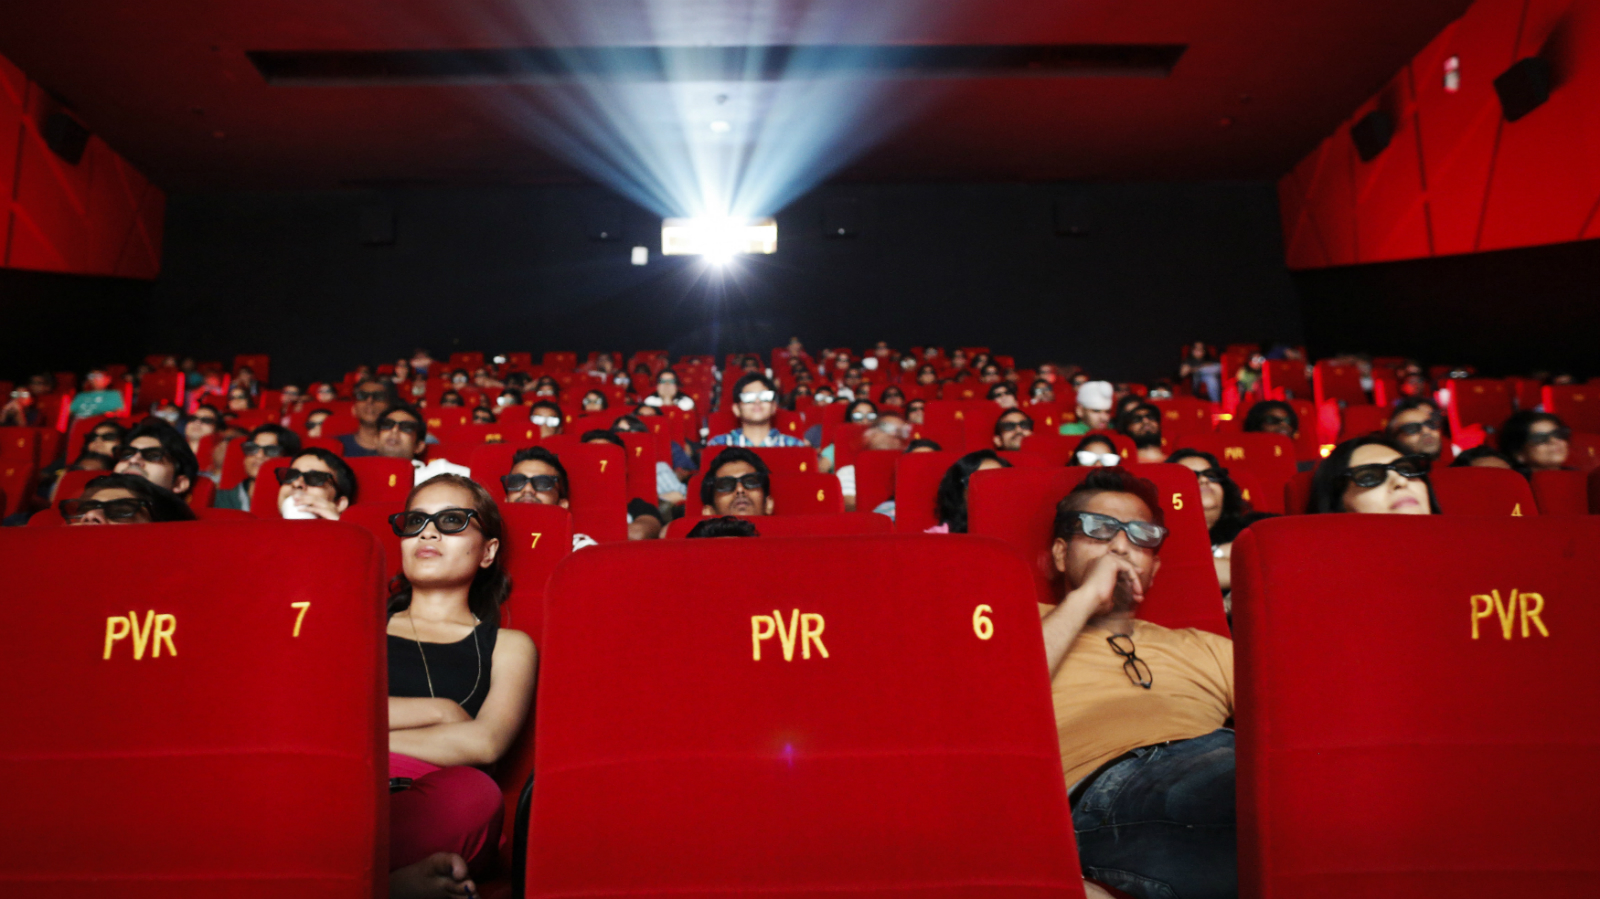 Cinema-goers wearing 3D glasses watch a movie at a PVR Multiplex in Mumbai November 10, 2013. Multiplex operators like PVR Ltd, Inox Leisure, Reliance Mediaworks and Mexican chain Cinepolis are scrambling to set up theatres targeting the rapidly growing number of middle-class Indians willing to pay to watch Bollywood movies in more comfortable surroundings. The potential is huge, provided operators can find the right location in a country where prime urban real estate is costly and in short supply. Picture taken November 10, 2013. To match MULTIPLEX-INDIA/ REUTERS/Danish Siddiqui (INDIA - Tags: SOCIETY BUSINESS ENTERTAINMENT)